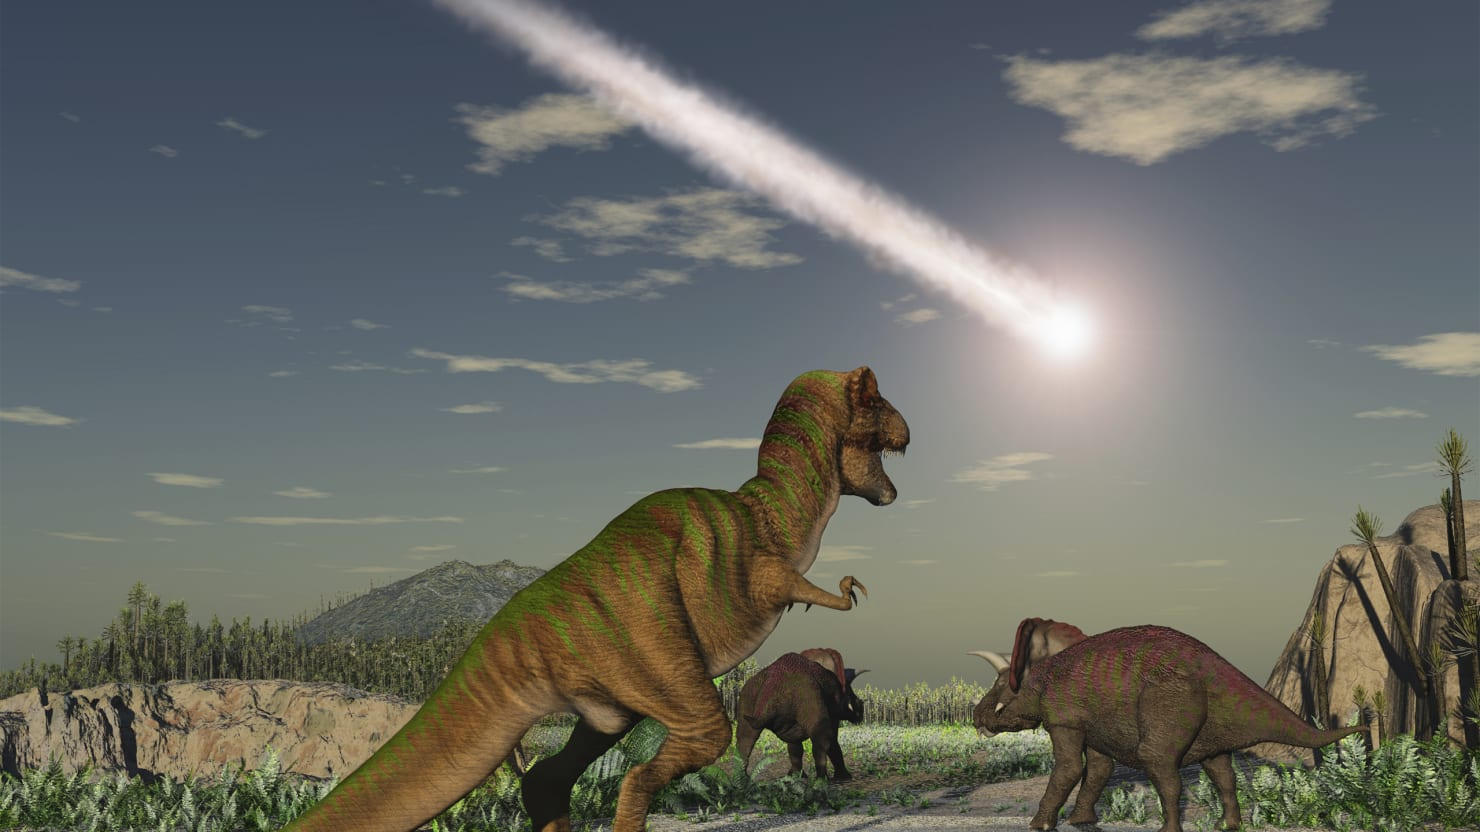 The Sixth Mass Extinction: We Aren't The Dinosaurs, We're The Asteroid